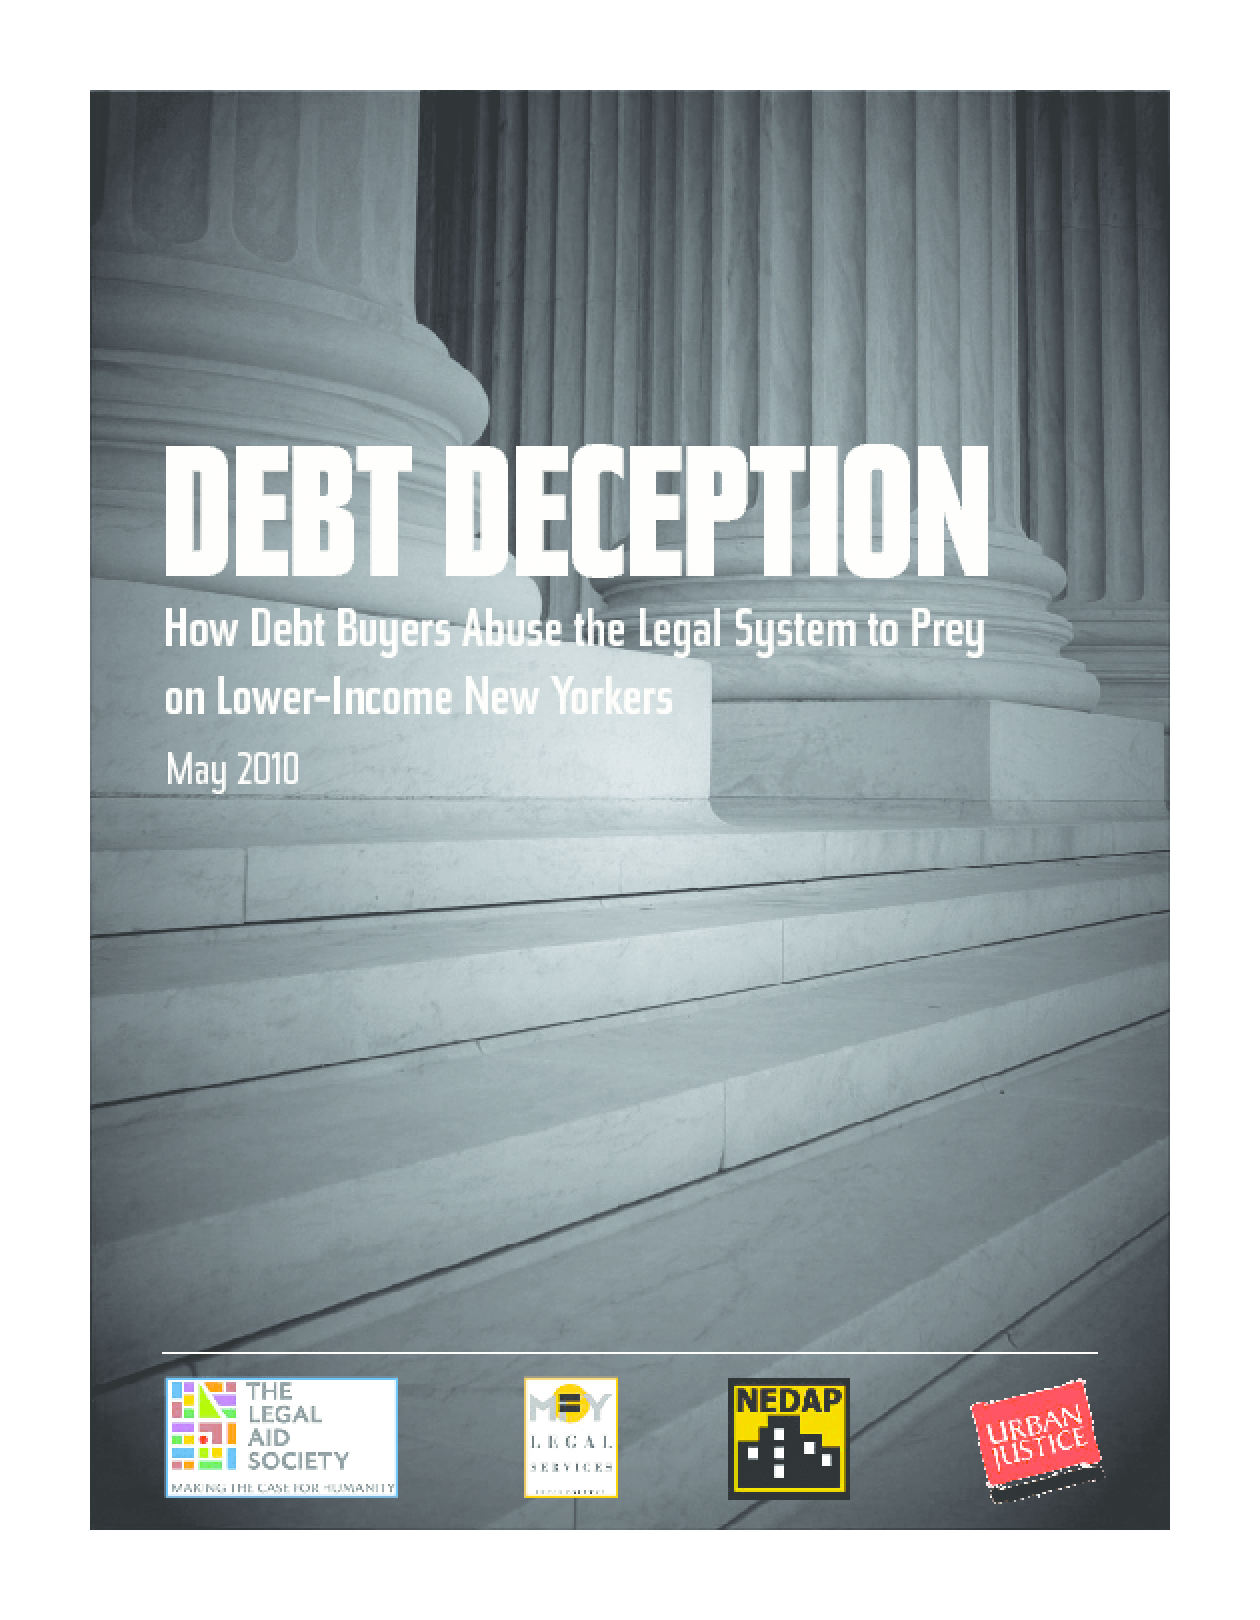 Debt Deception: How Debt Buyers Abuse the Legal System to Prey on Lower-Income New Yorkers